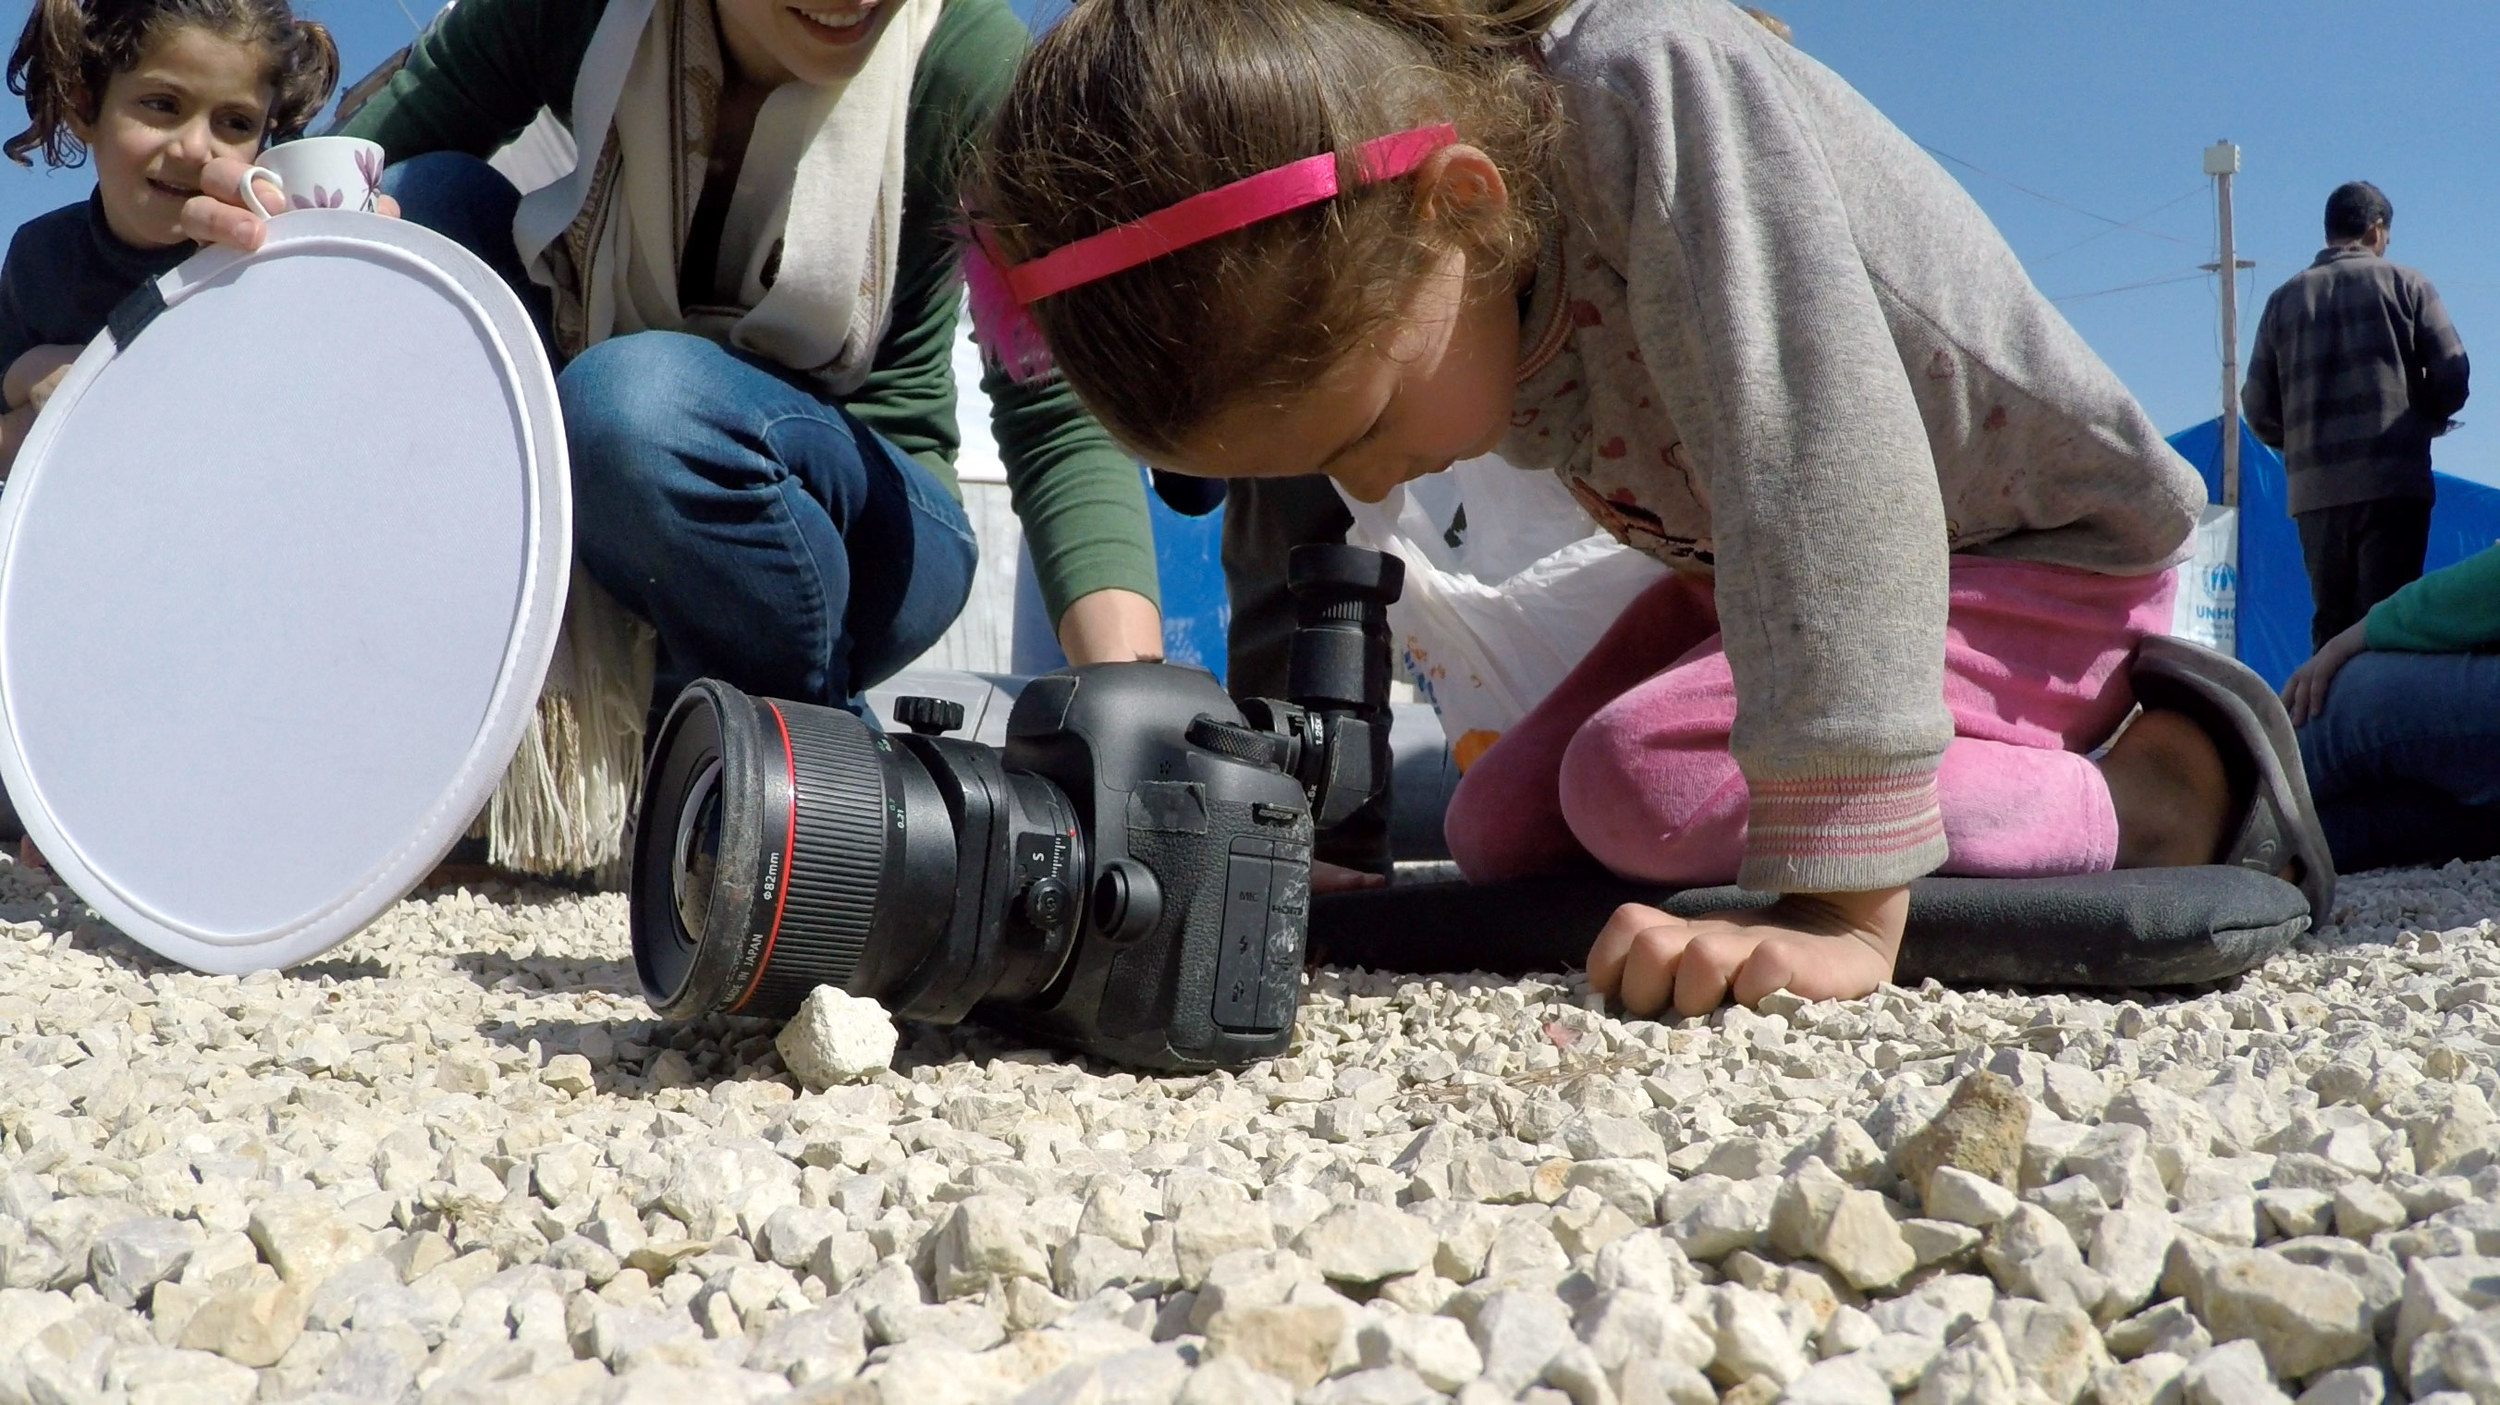 Refugee children take turns looking through the viewfinder at the toy-filled world created in front of the lens.